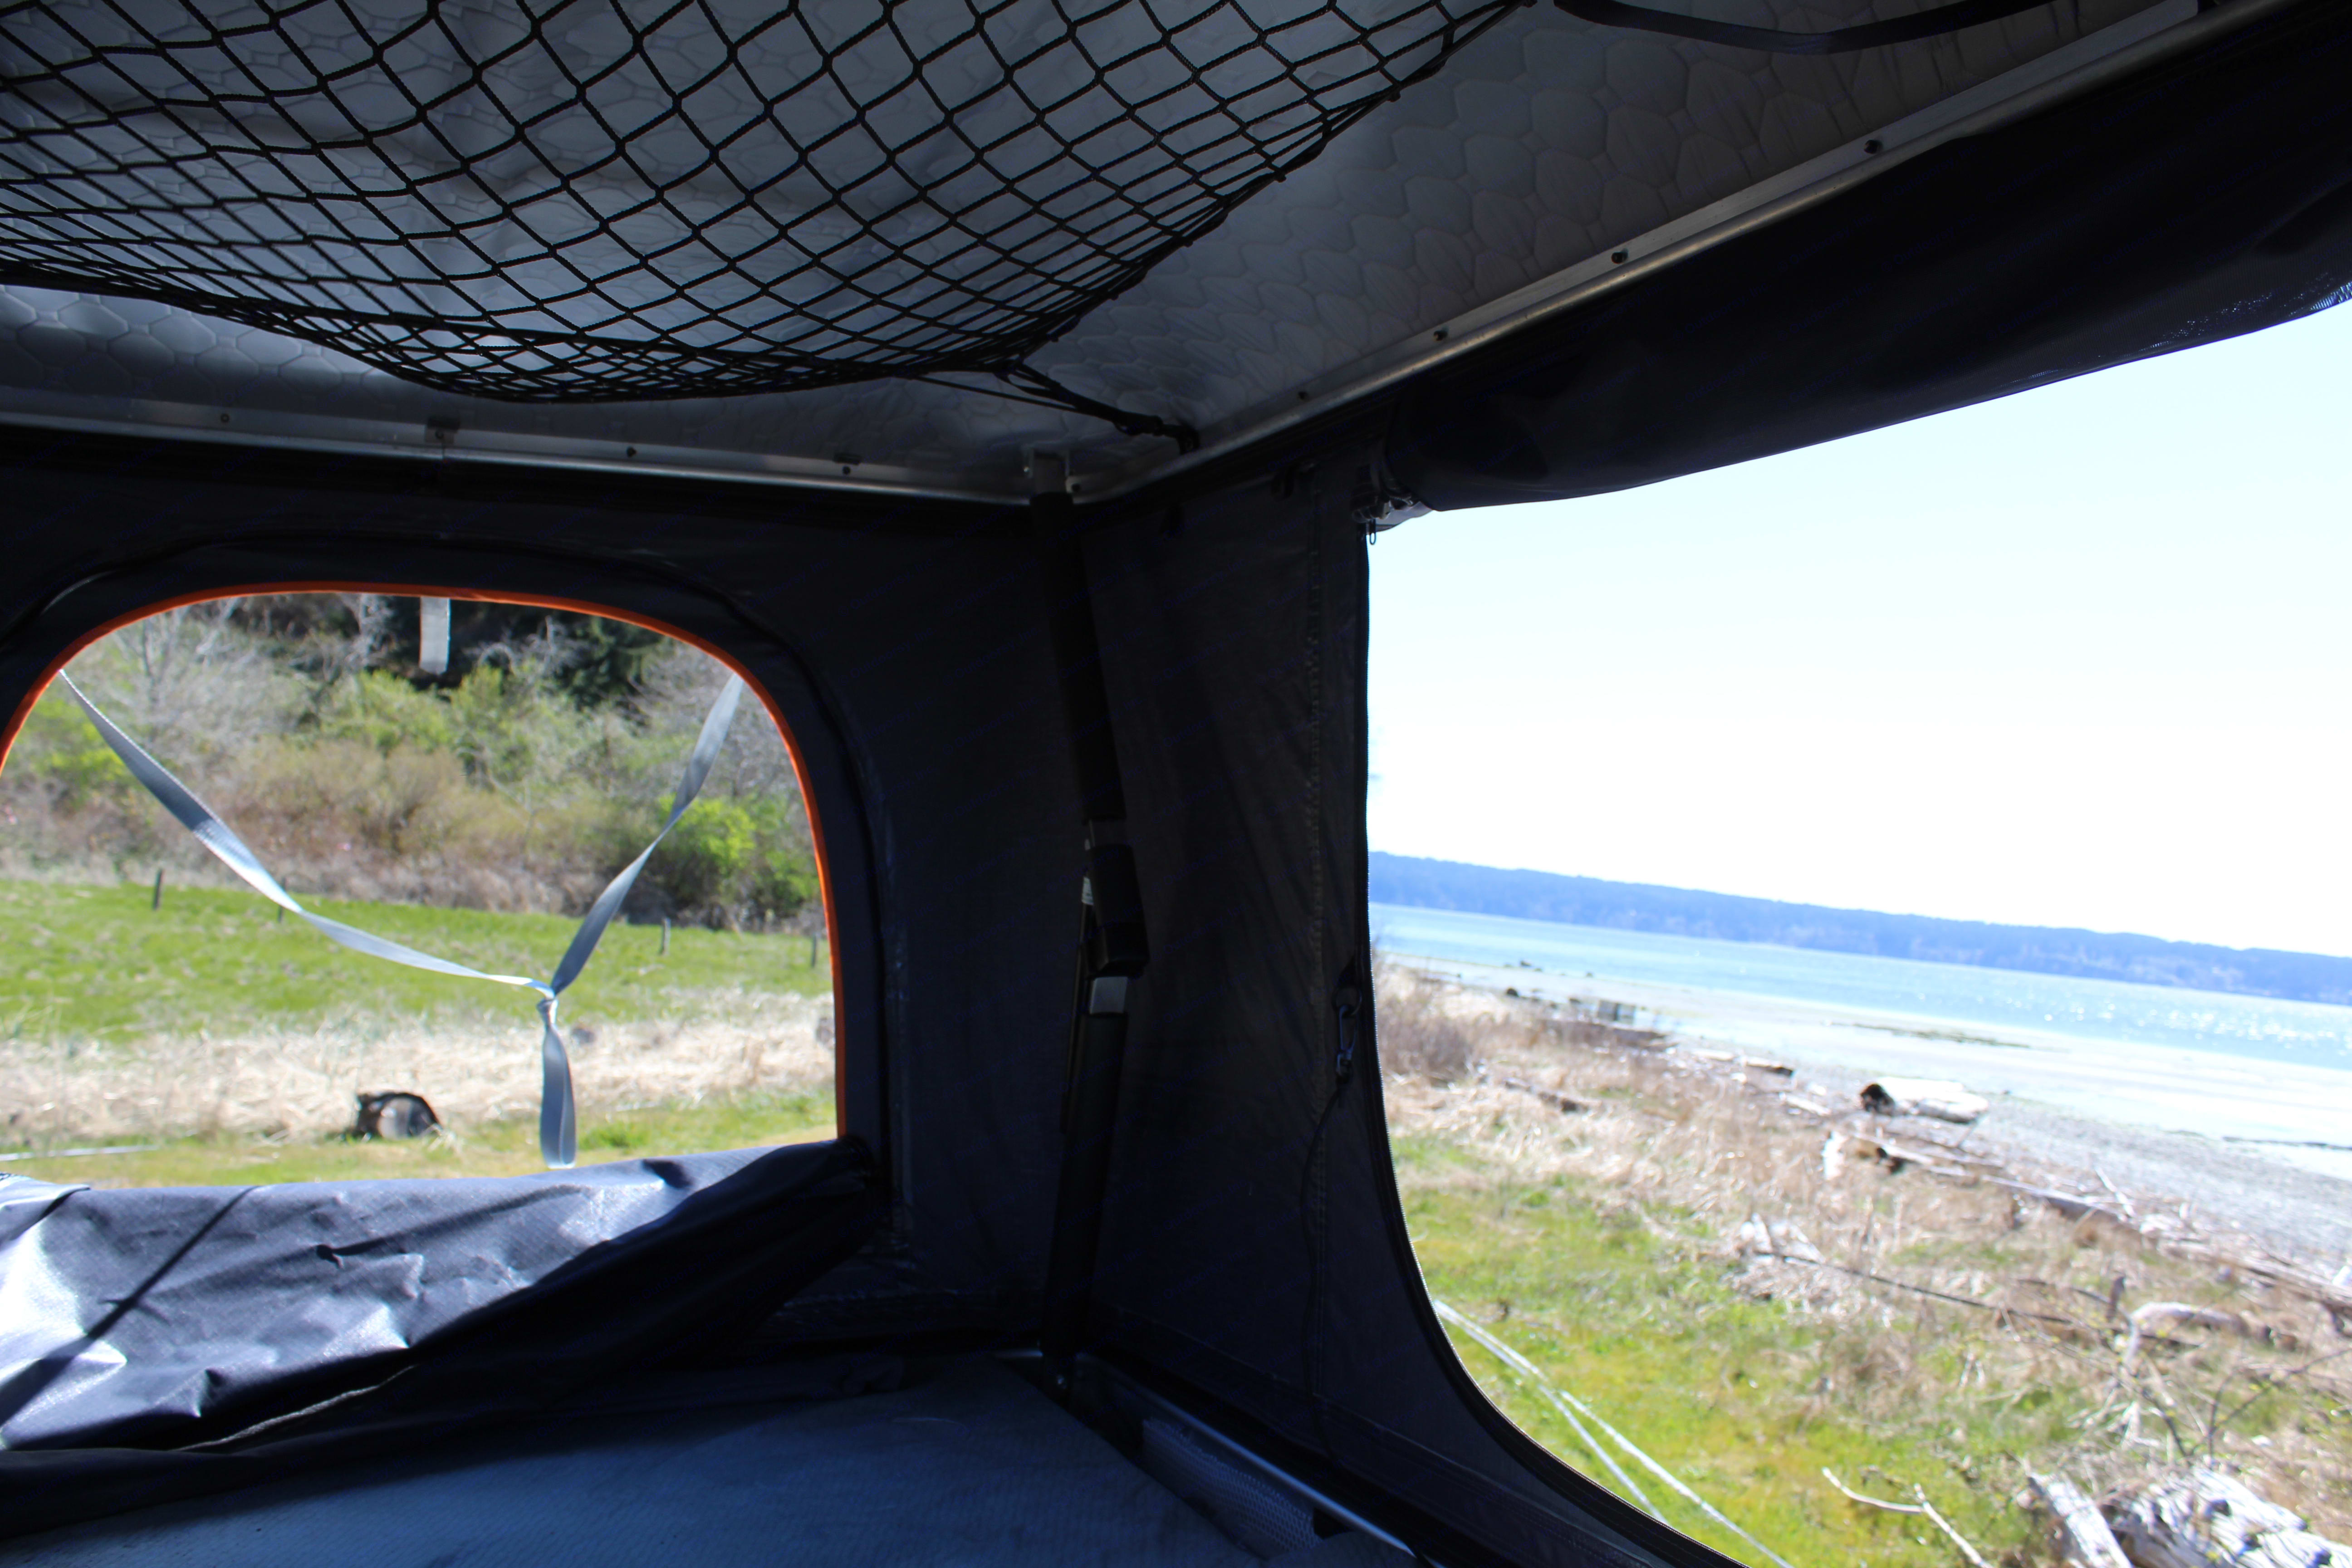 View from the optional rooftop tent! . Ford Transit 2019